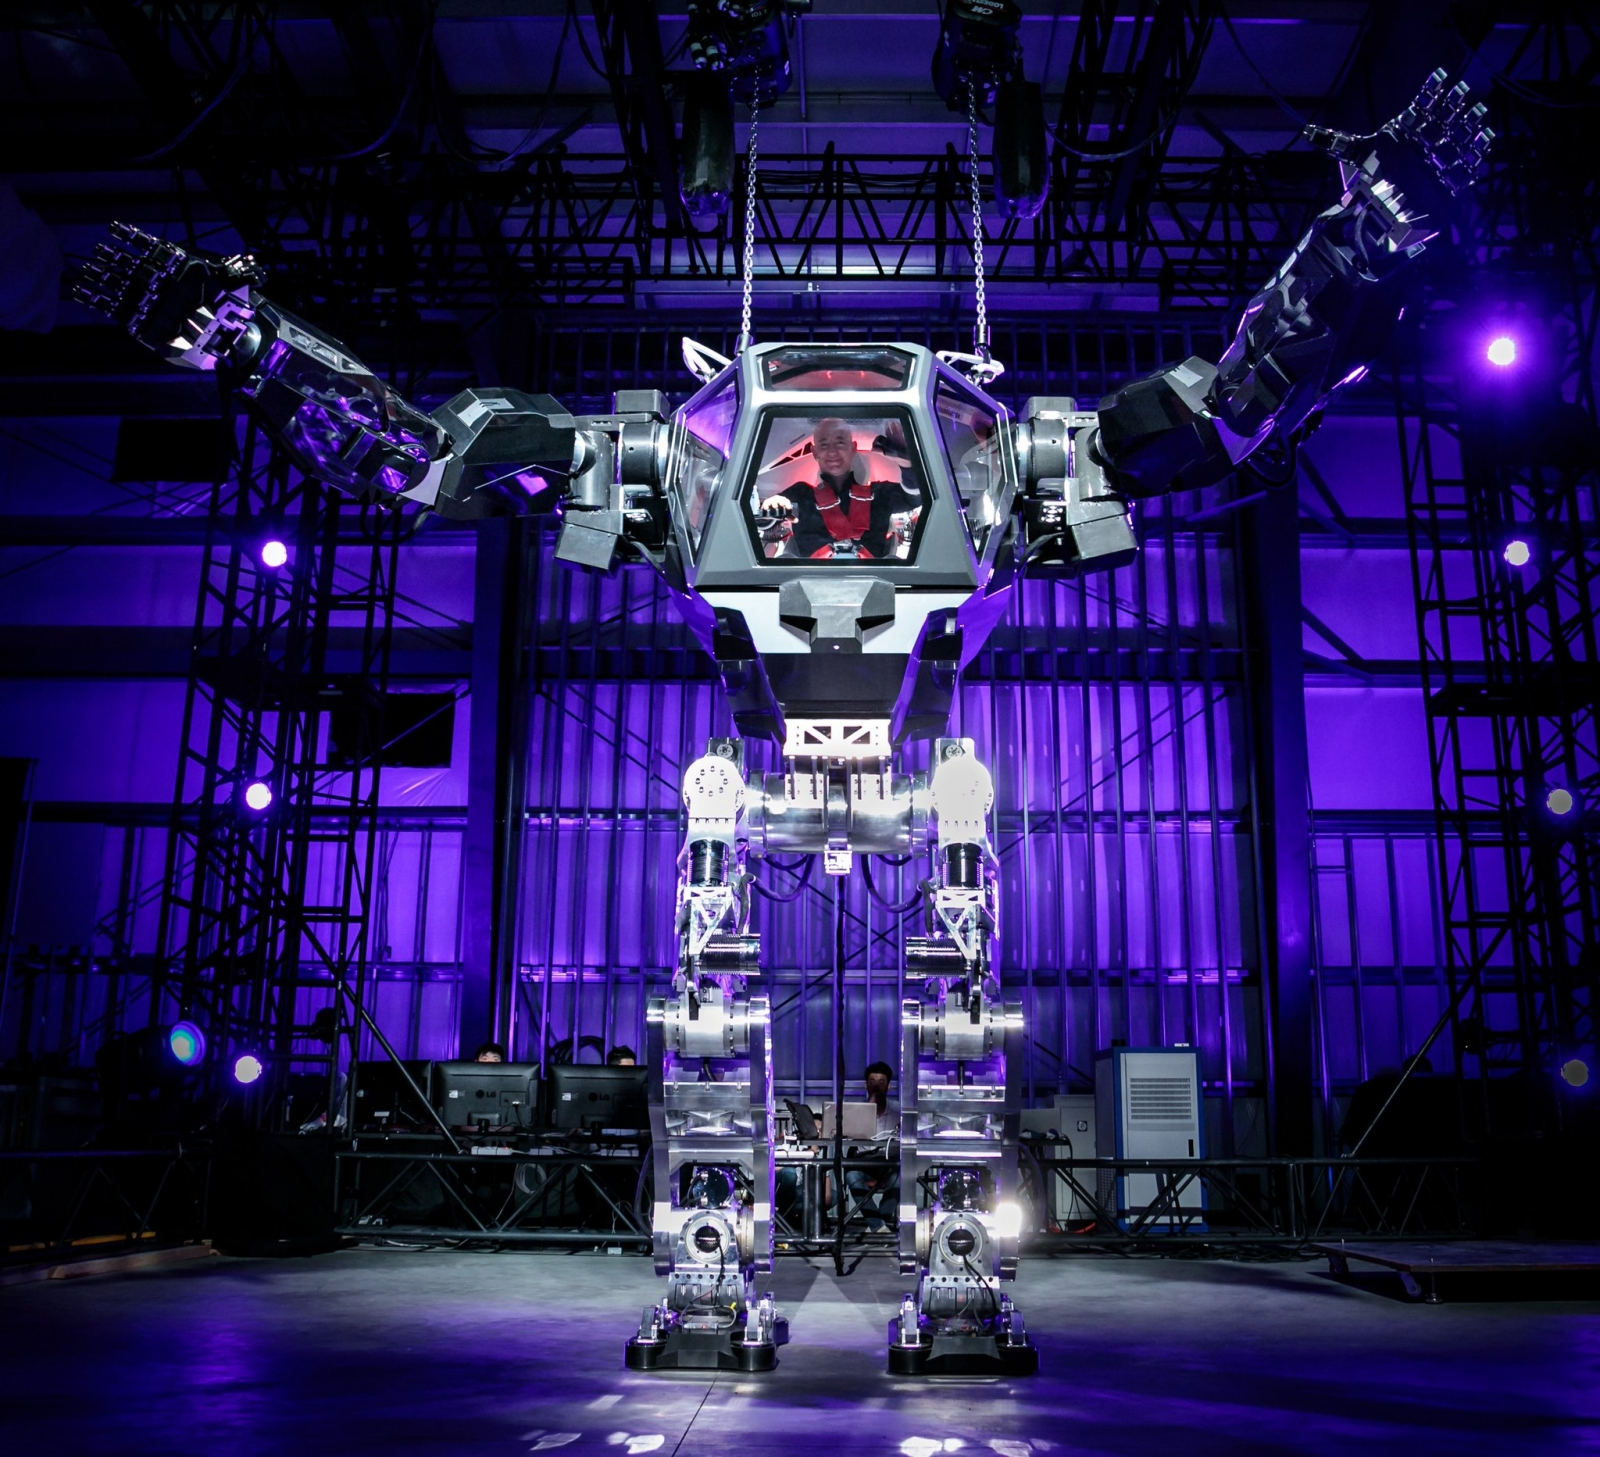 Watch Jeff Bezos Pilot a Giant Mech in Real Life